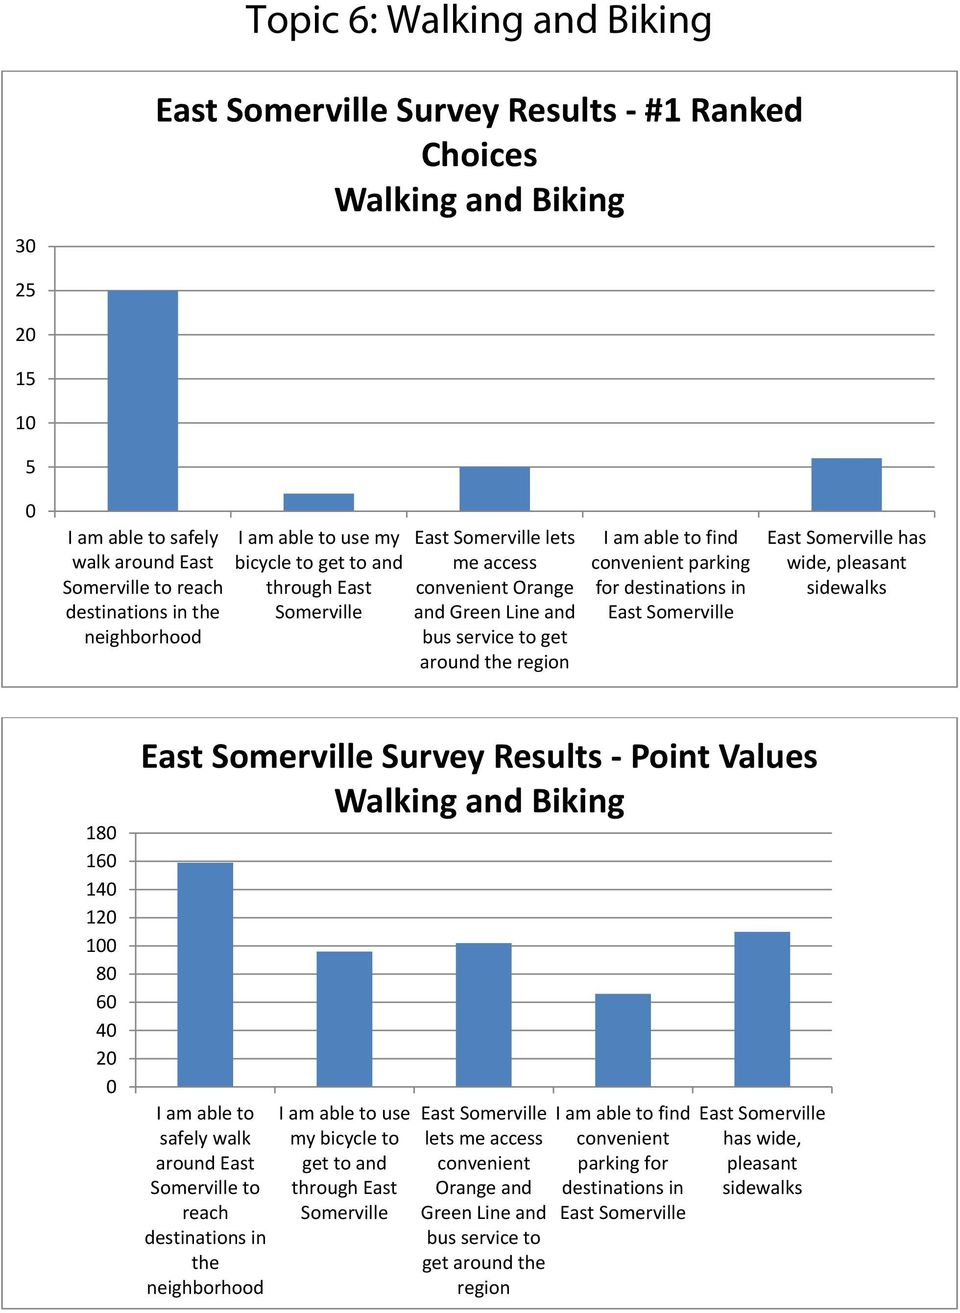 has wide, pleasant sidewalks 18 16 14 12 1 8 6 4 2 Survey Results Point Values Walking and Biking I am able to safely walk around East Somerville to reach destinations in the neighborhood I am able